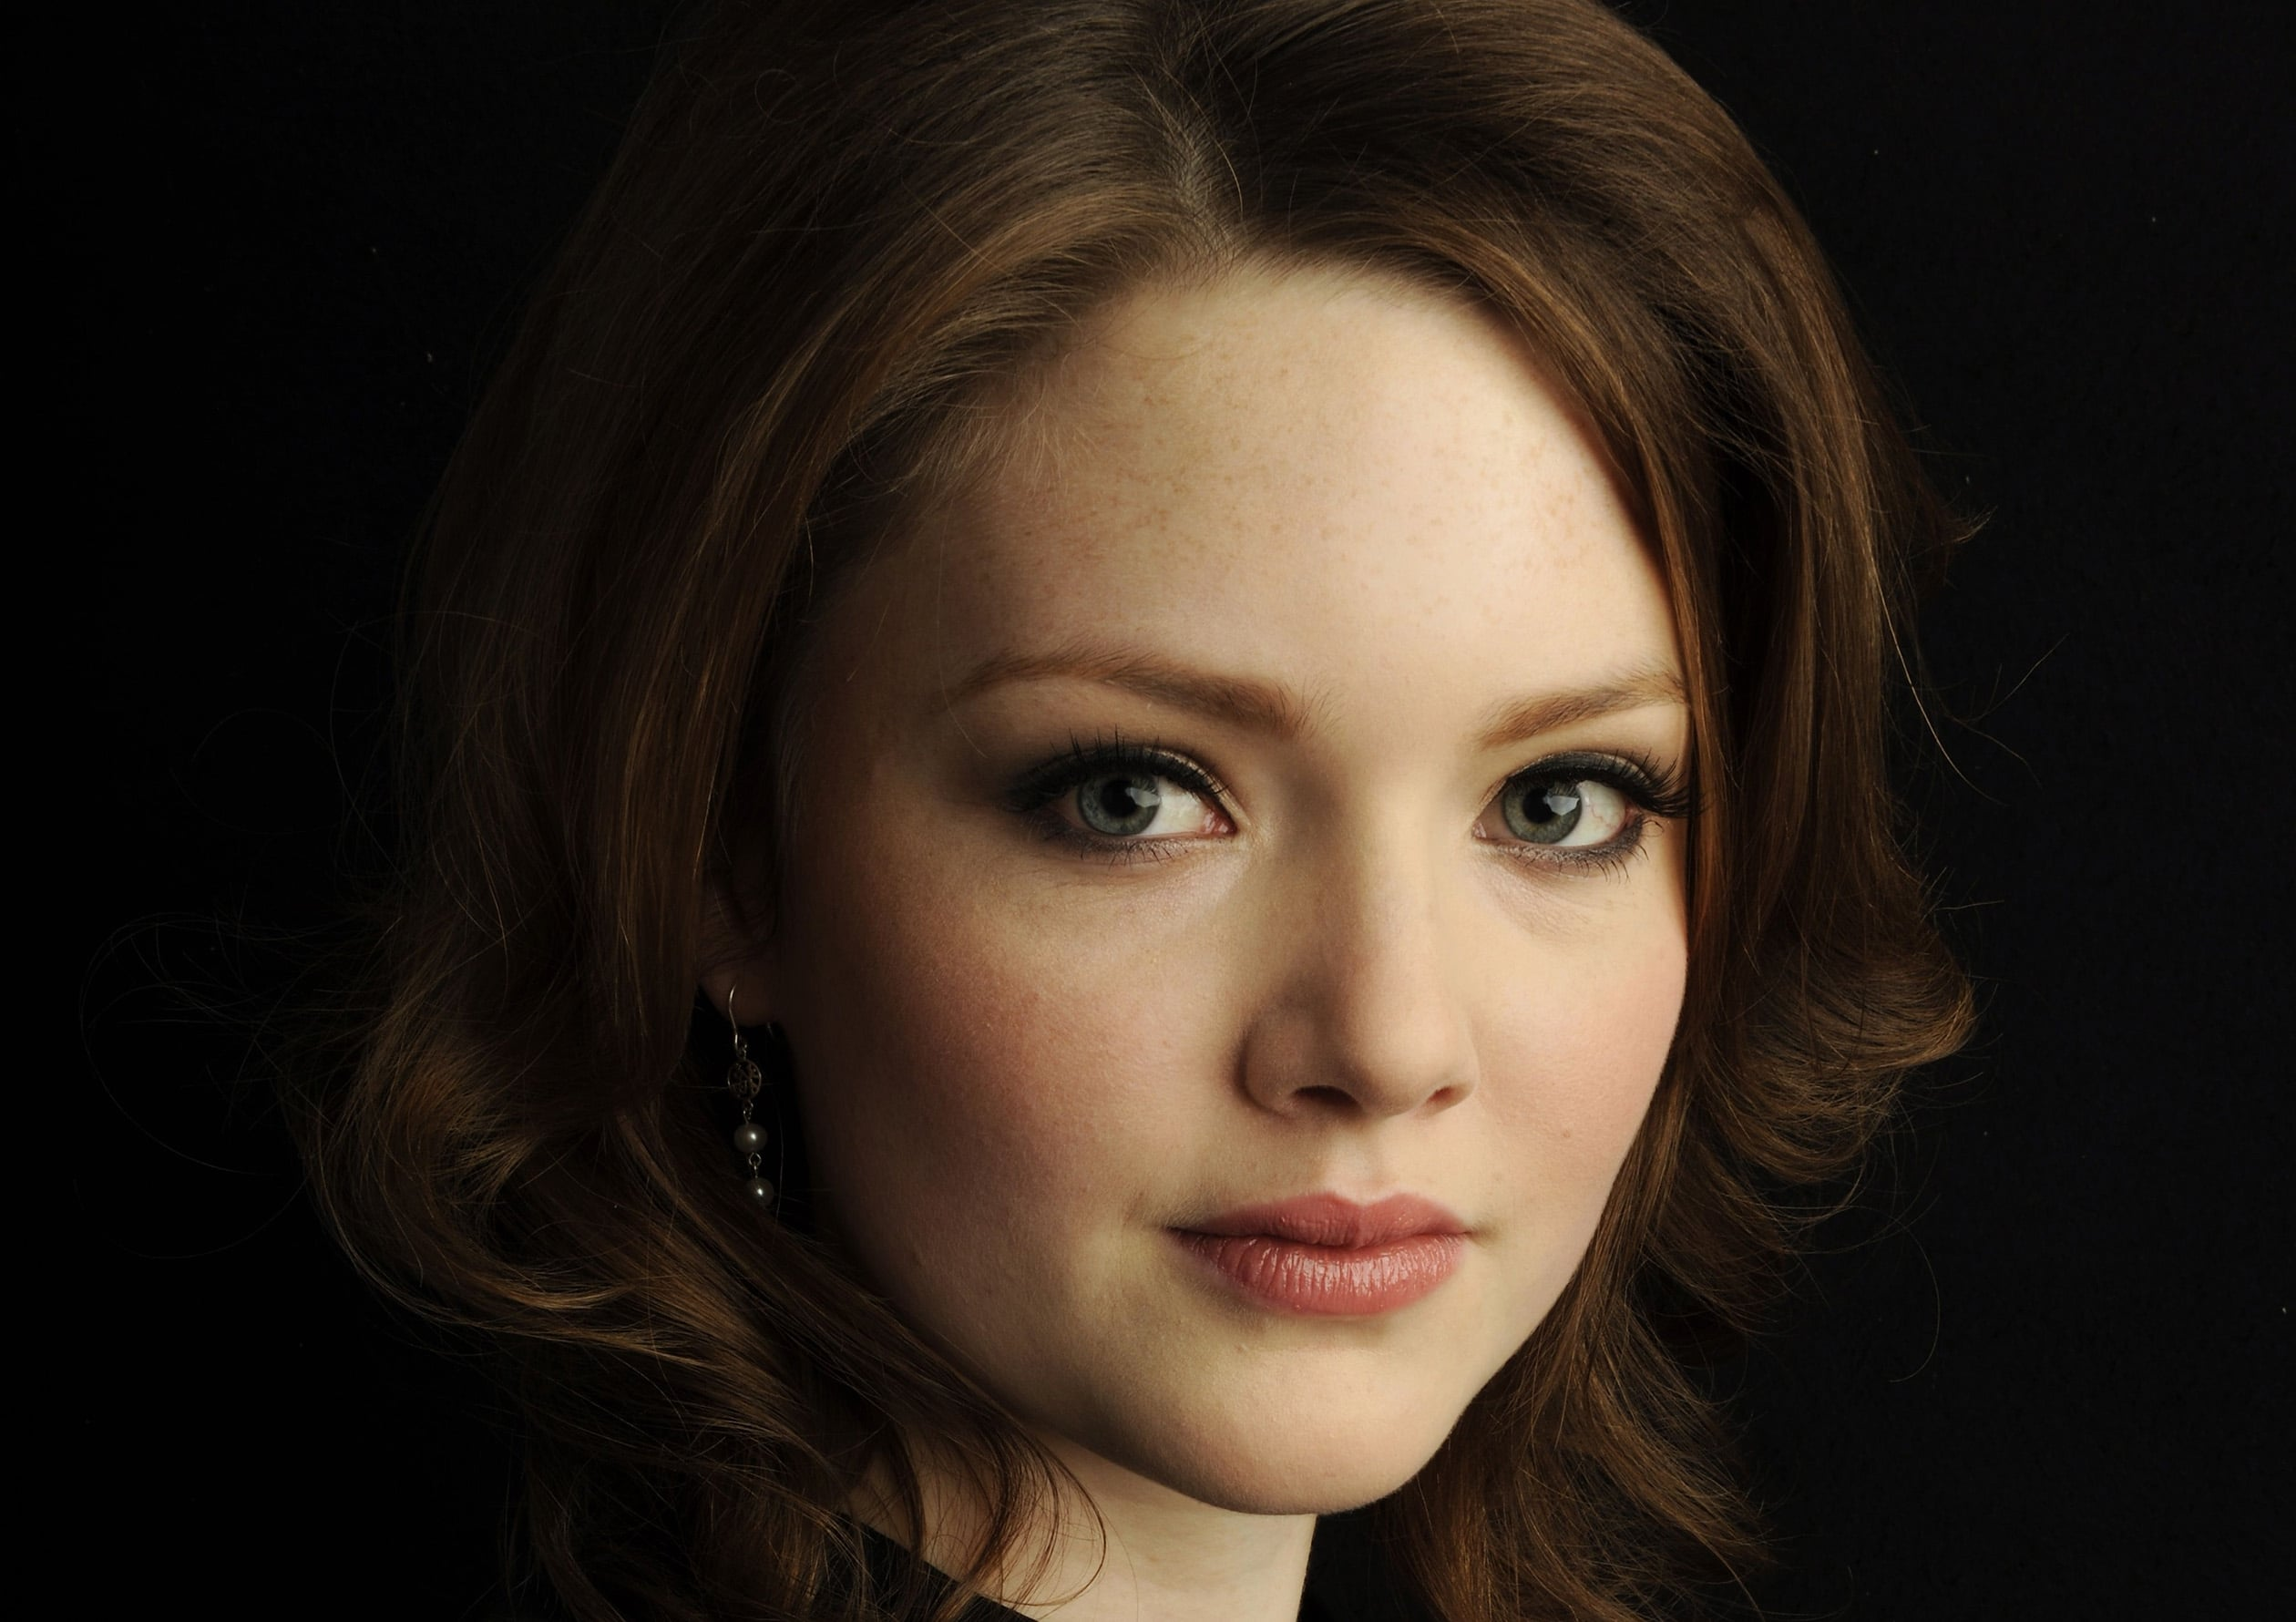 Holliday Grainger HD wallpapers free Download